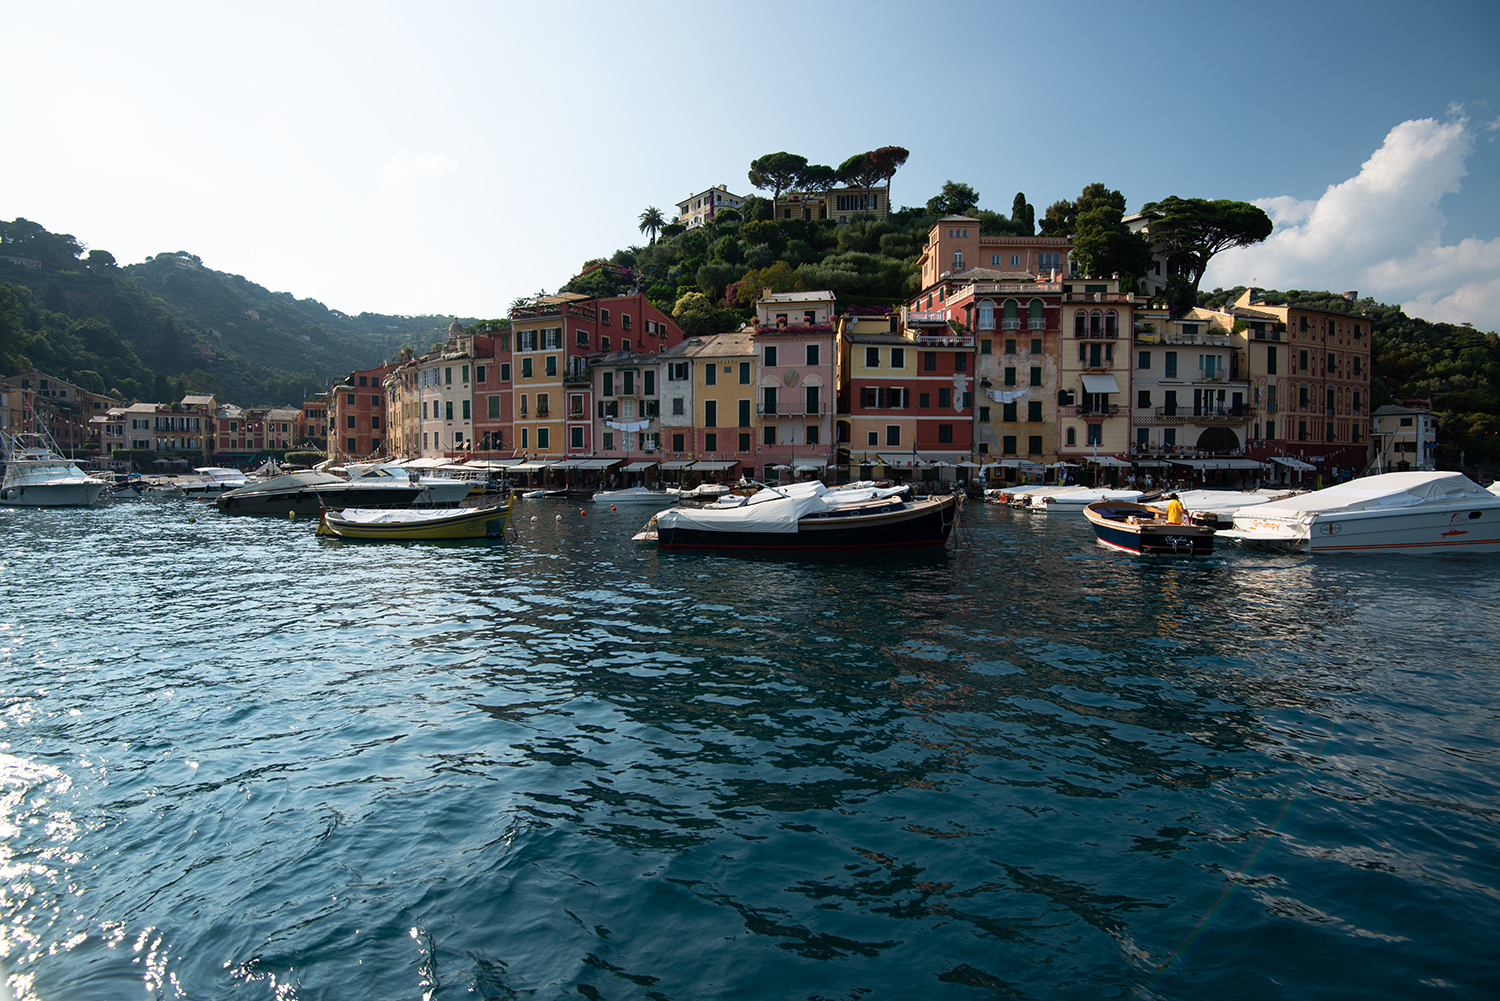 https://sleeklens.com/wp-content/uploads/2018/08/Portofino-2.jpg